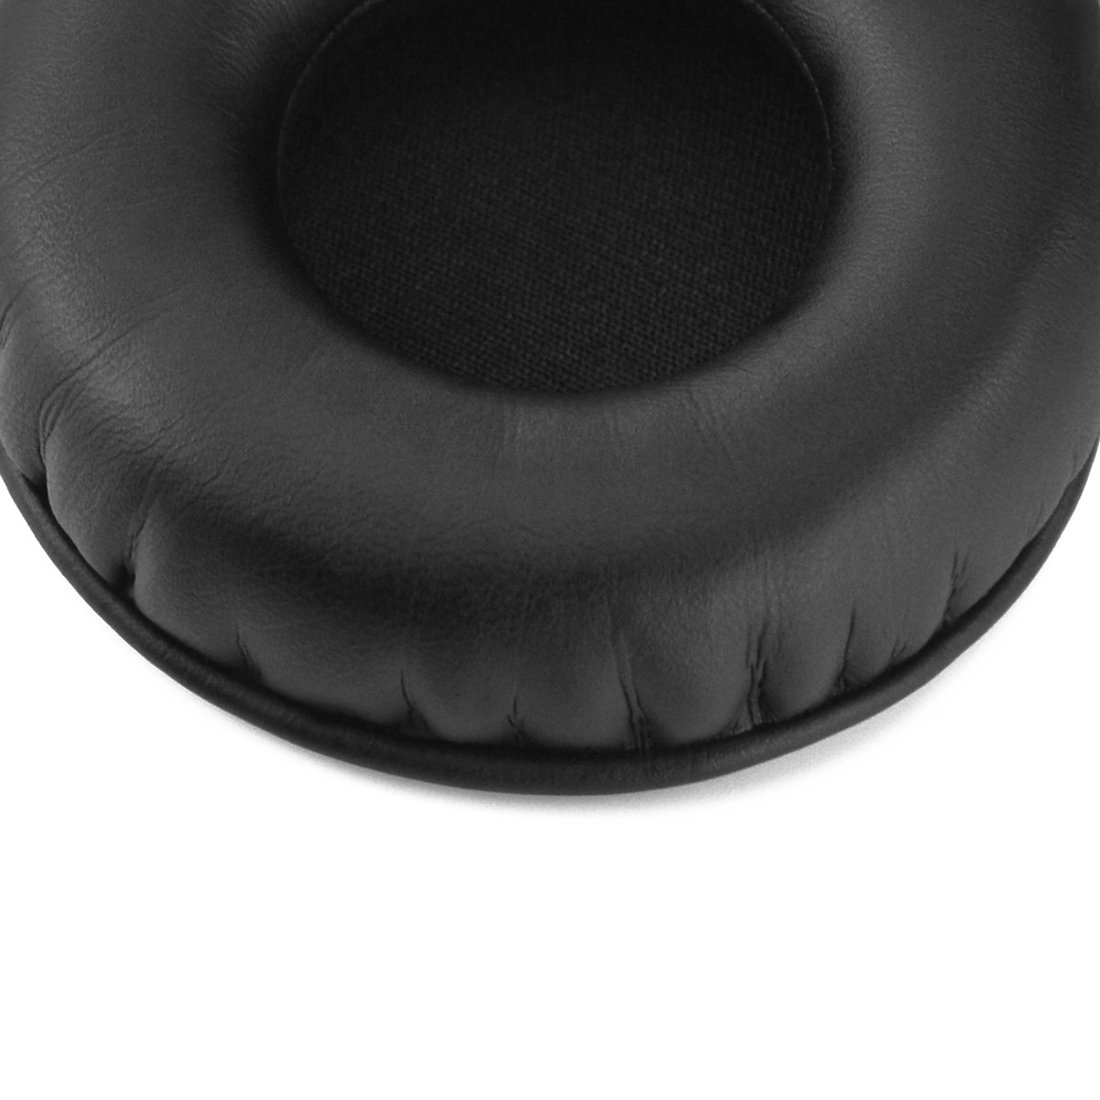 Memory Foam Thicker Earpads pads Cushion For Audio-Technica ATH-ES55 Headphones